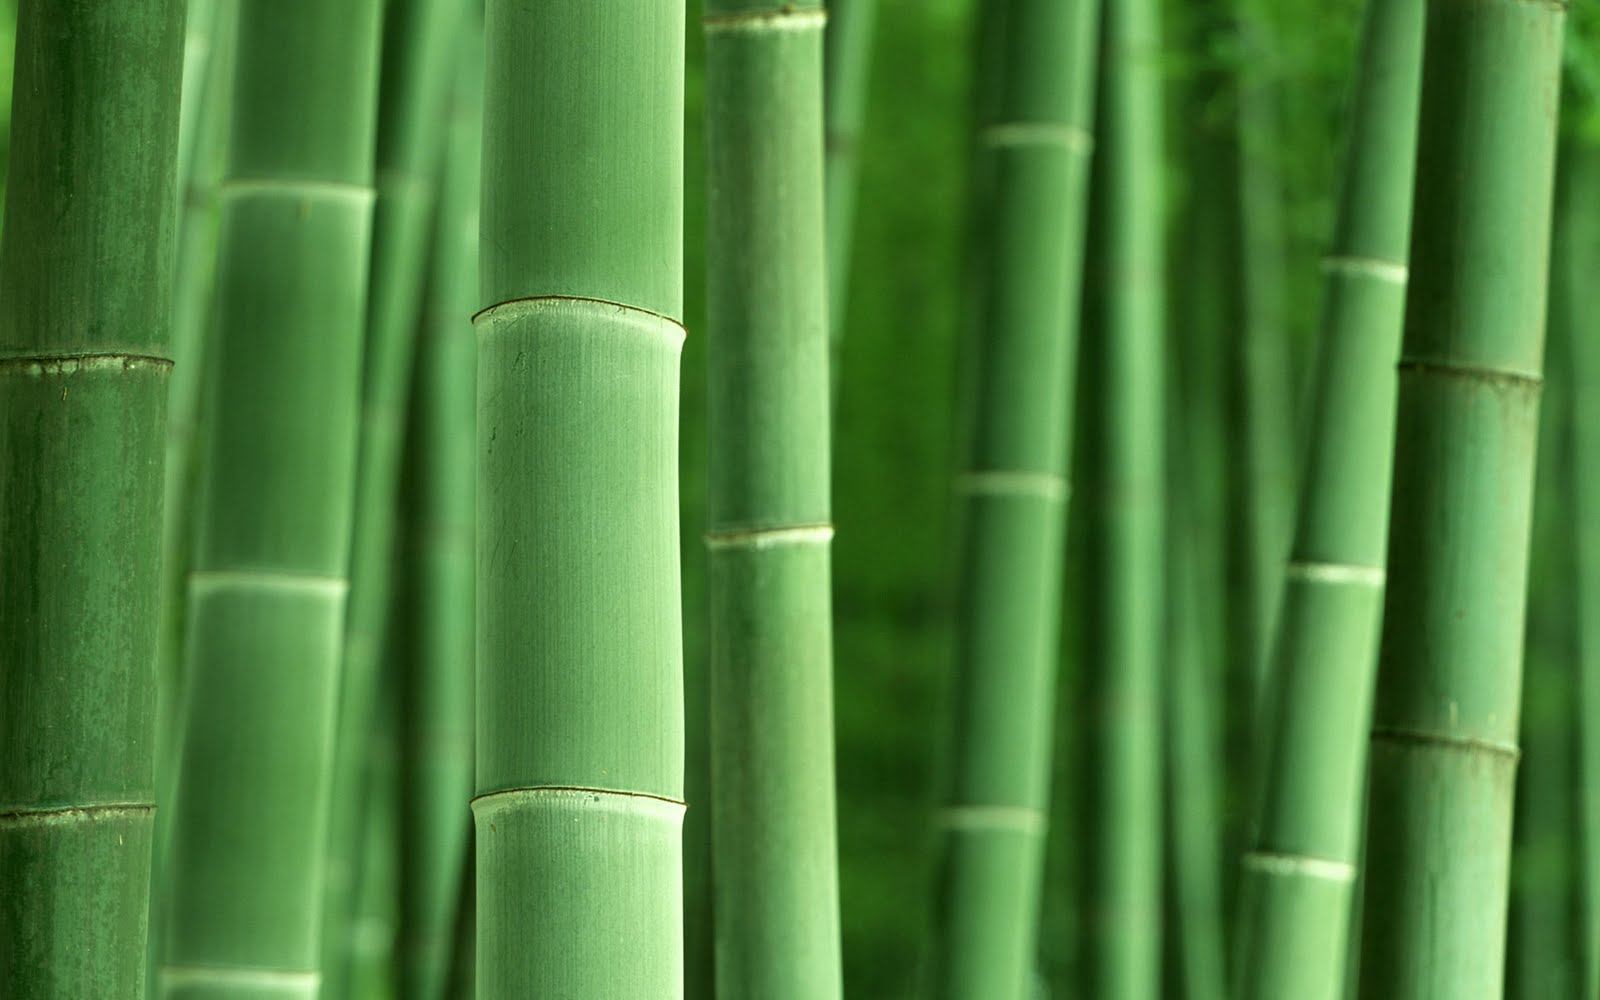 HQ Bamboo Wallpapers | File 106.85Kb